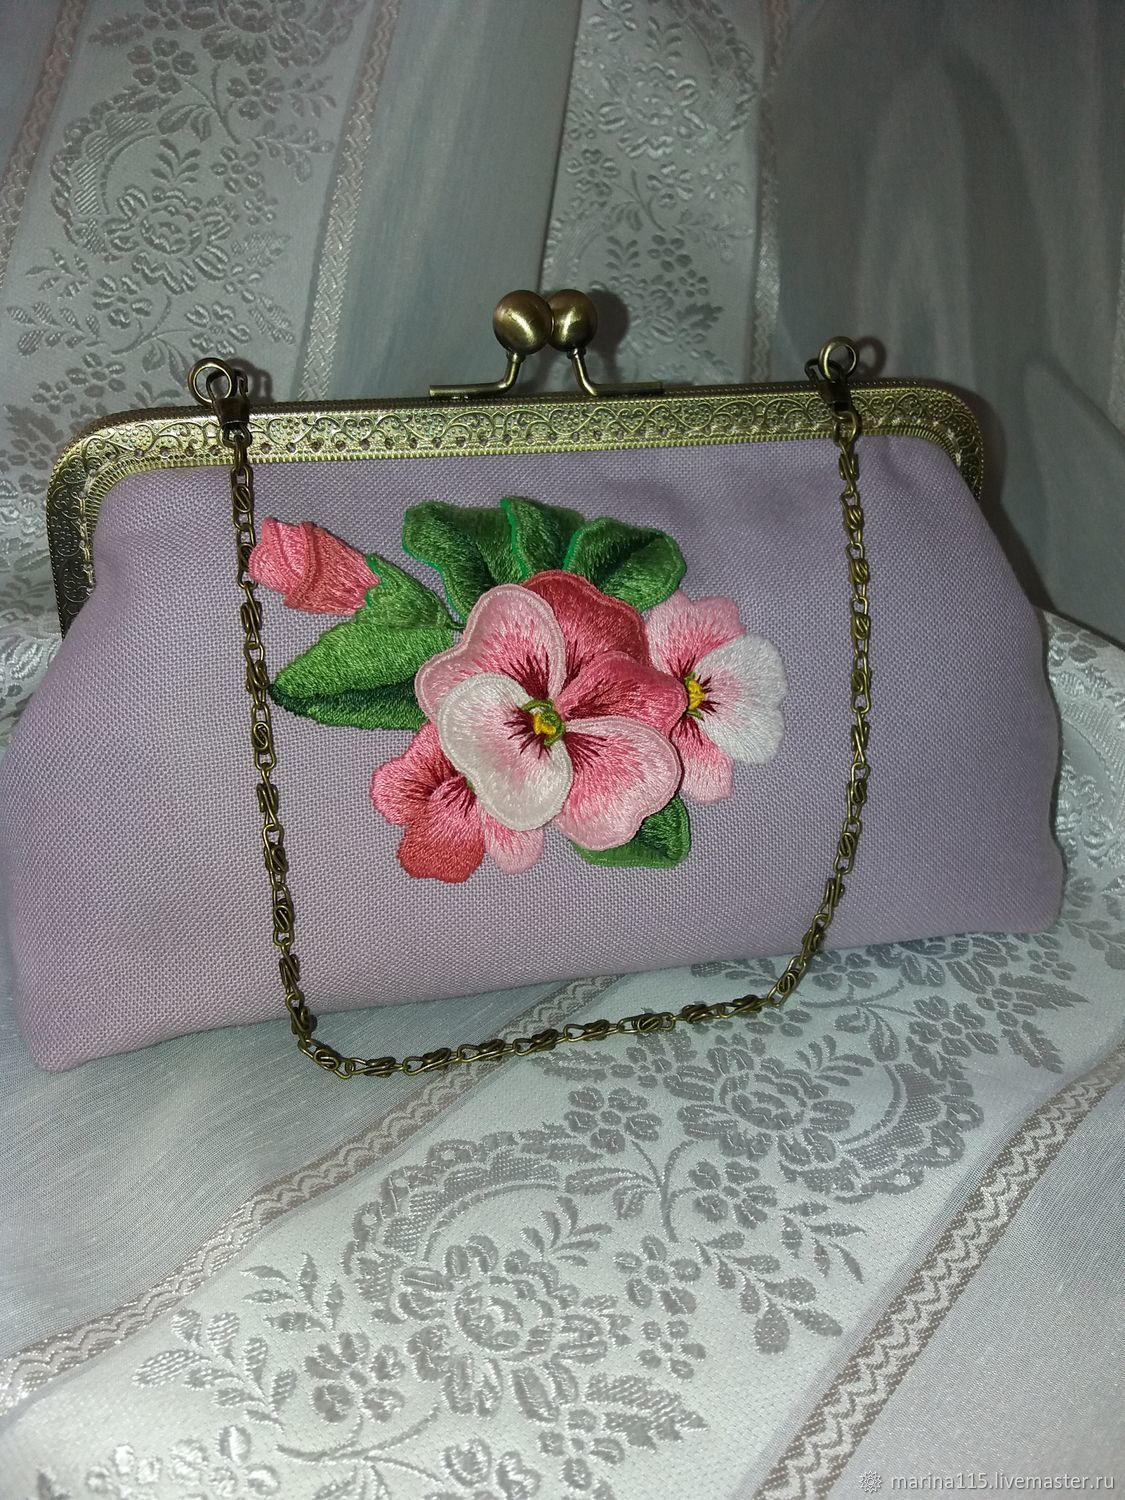 Handbag Anyuta Hand Embroidery Shop Online On Livemaster With